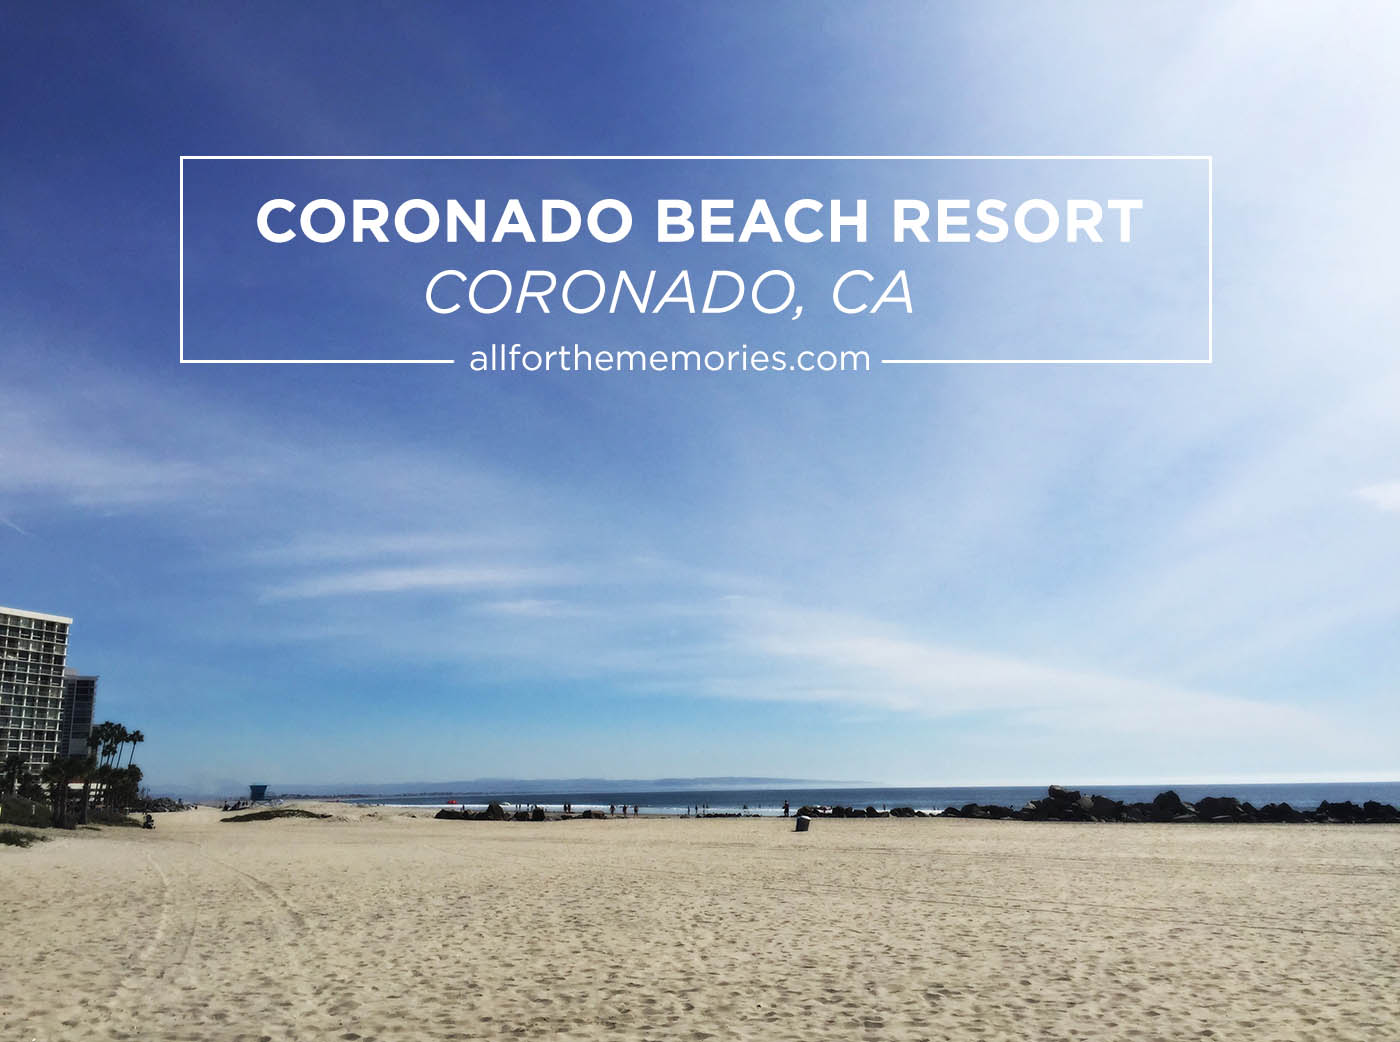 California Family Travel + New ResorTime Discount!